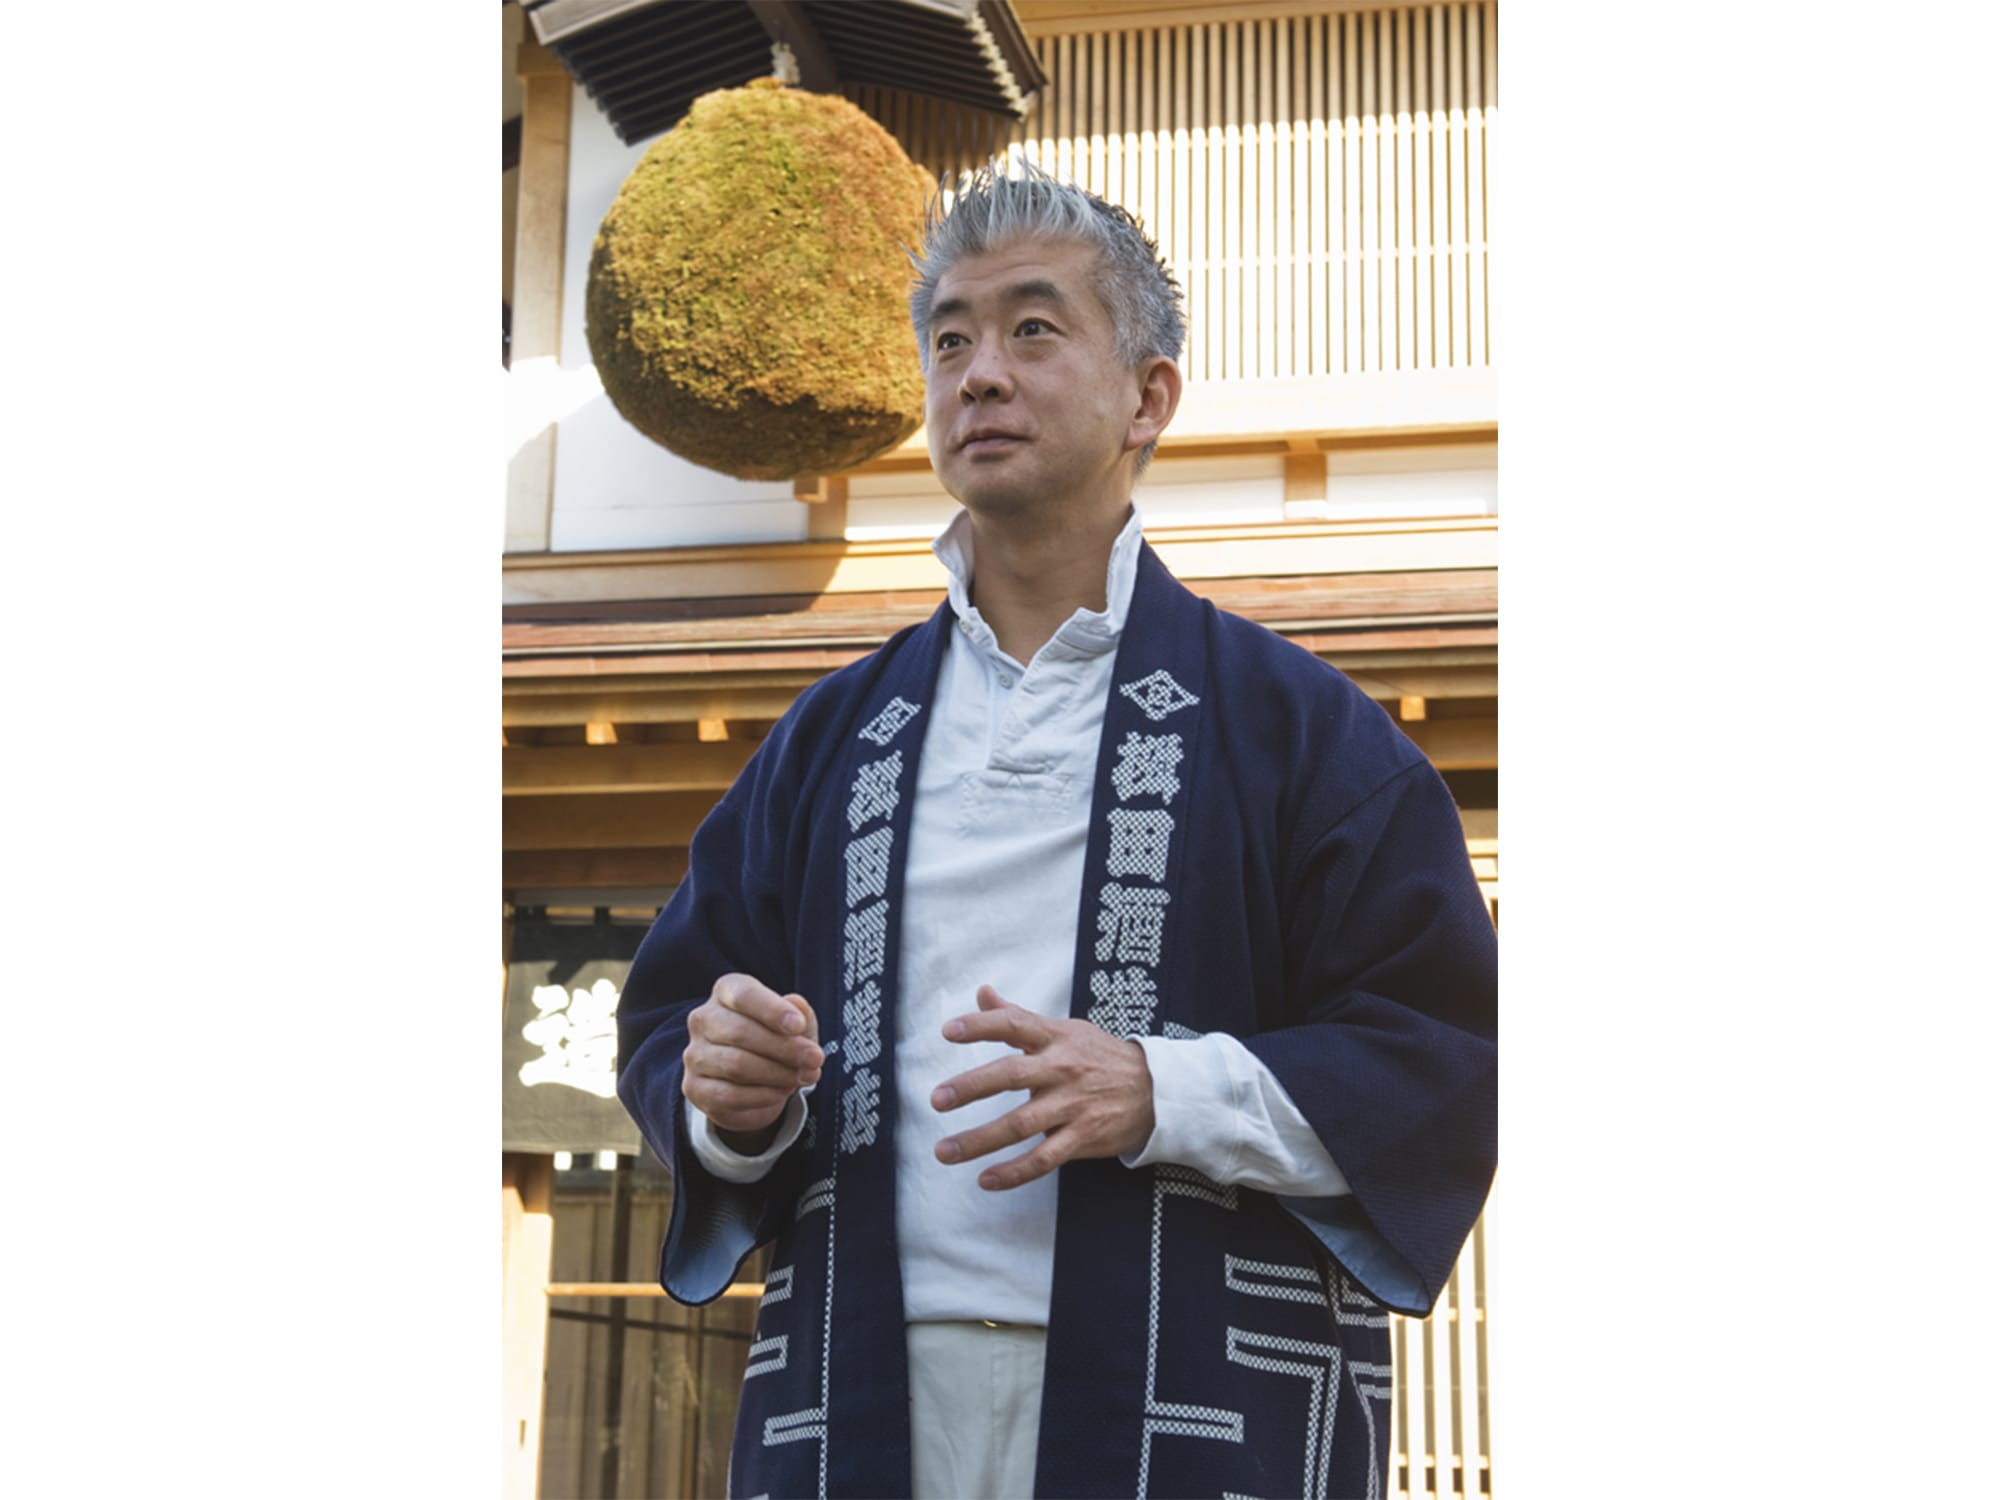 Ryuichiro Masuda, Masudashuzo's fifth generation mentions that Bunka wo matou (to be wrapped in culture) is important for both sake brewing and town planning.